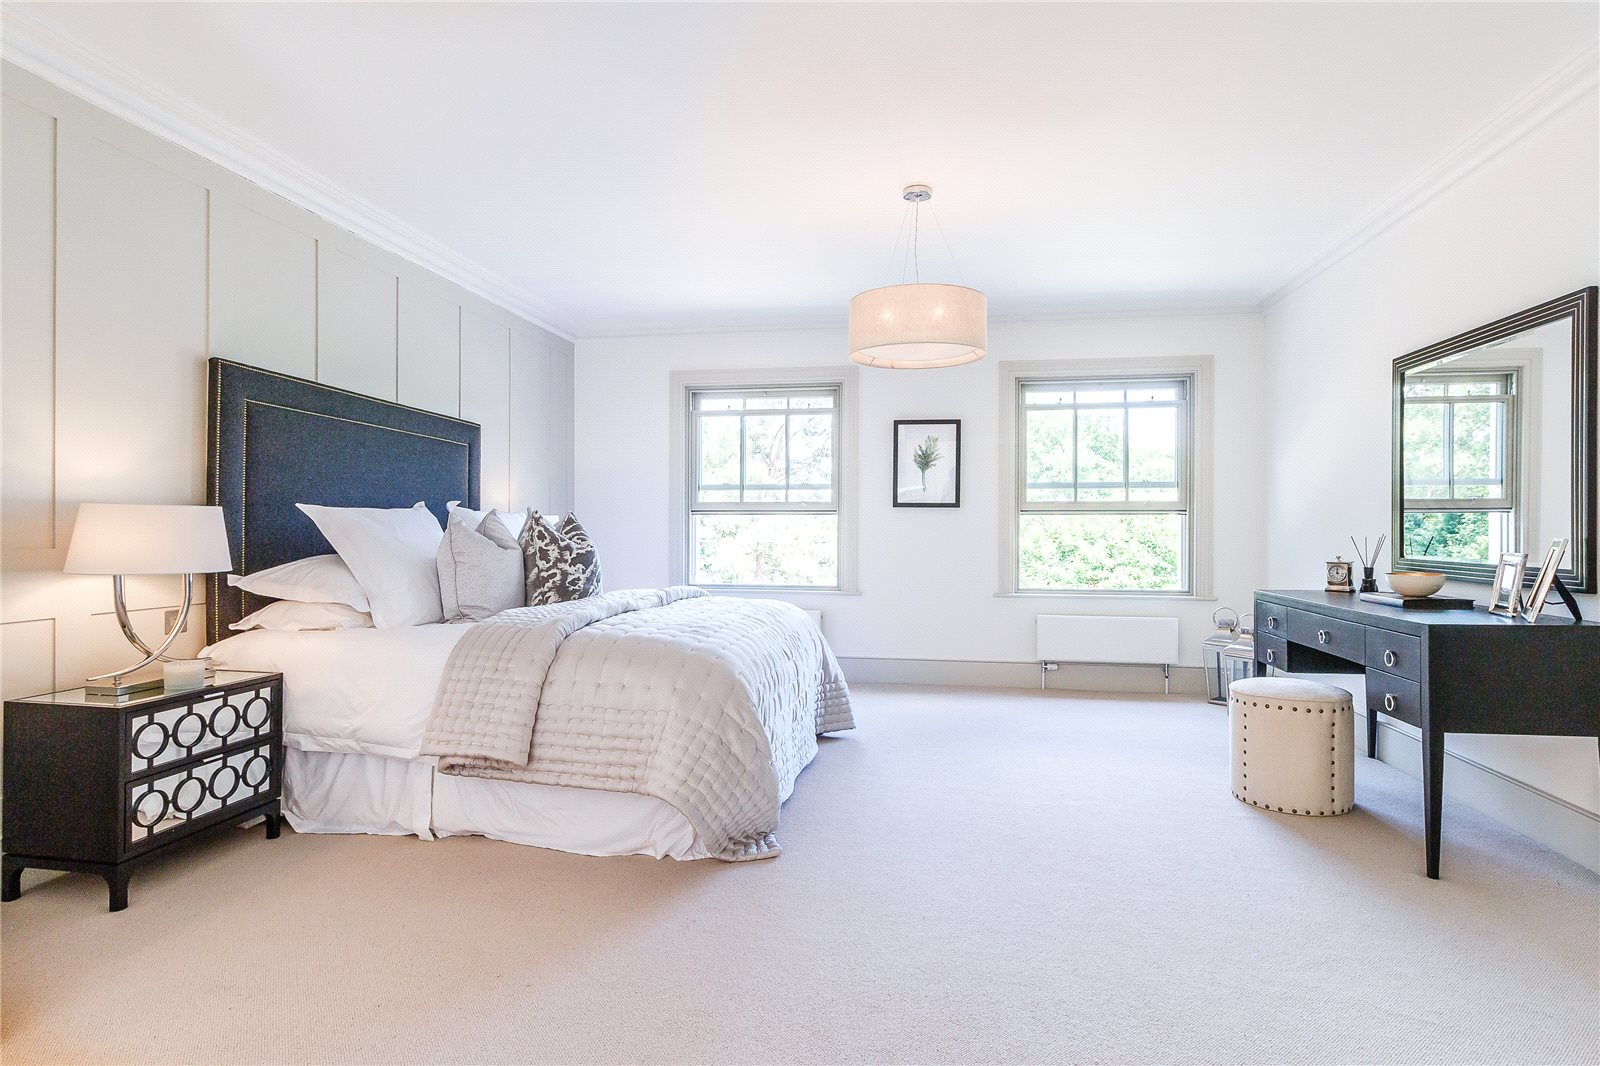 Additional photo for property listing at Camp Road, Gerrards Cross, Buckinghamshire, SL9 Gerrards Cross, Inghilterra